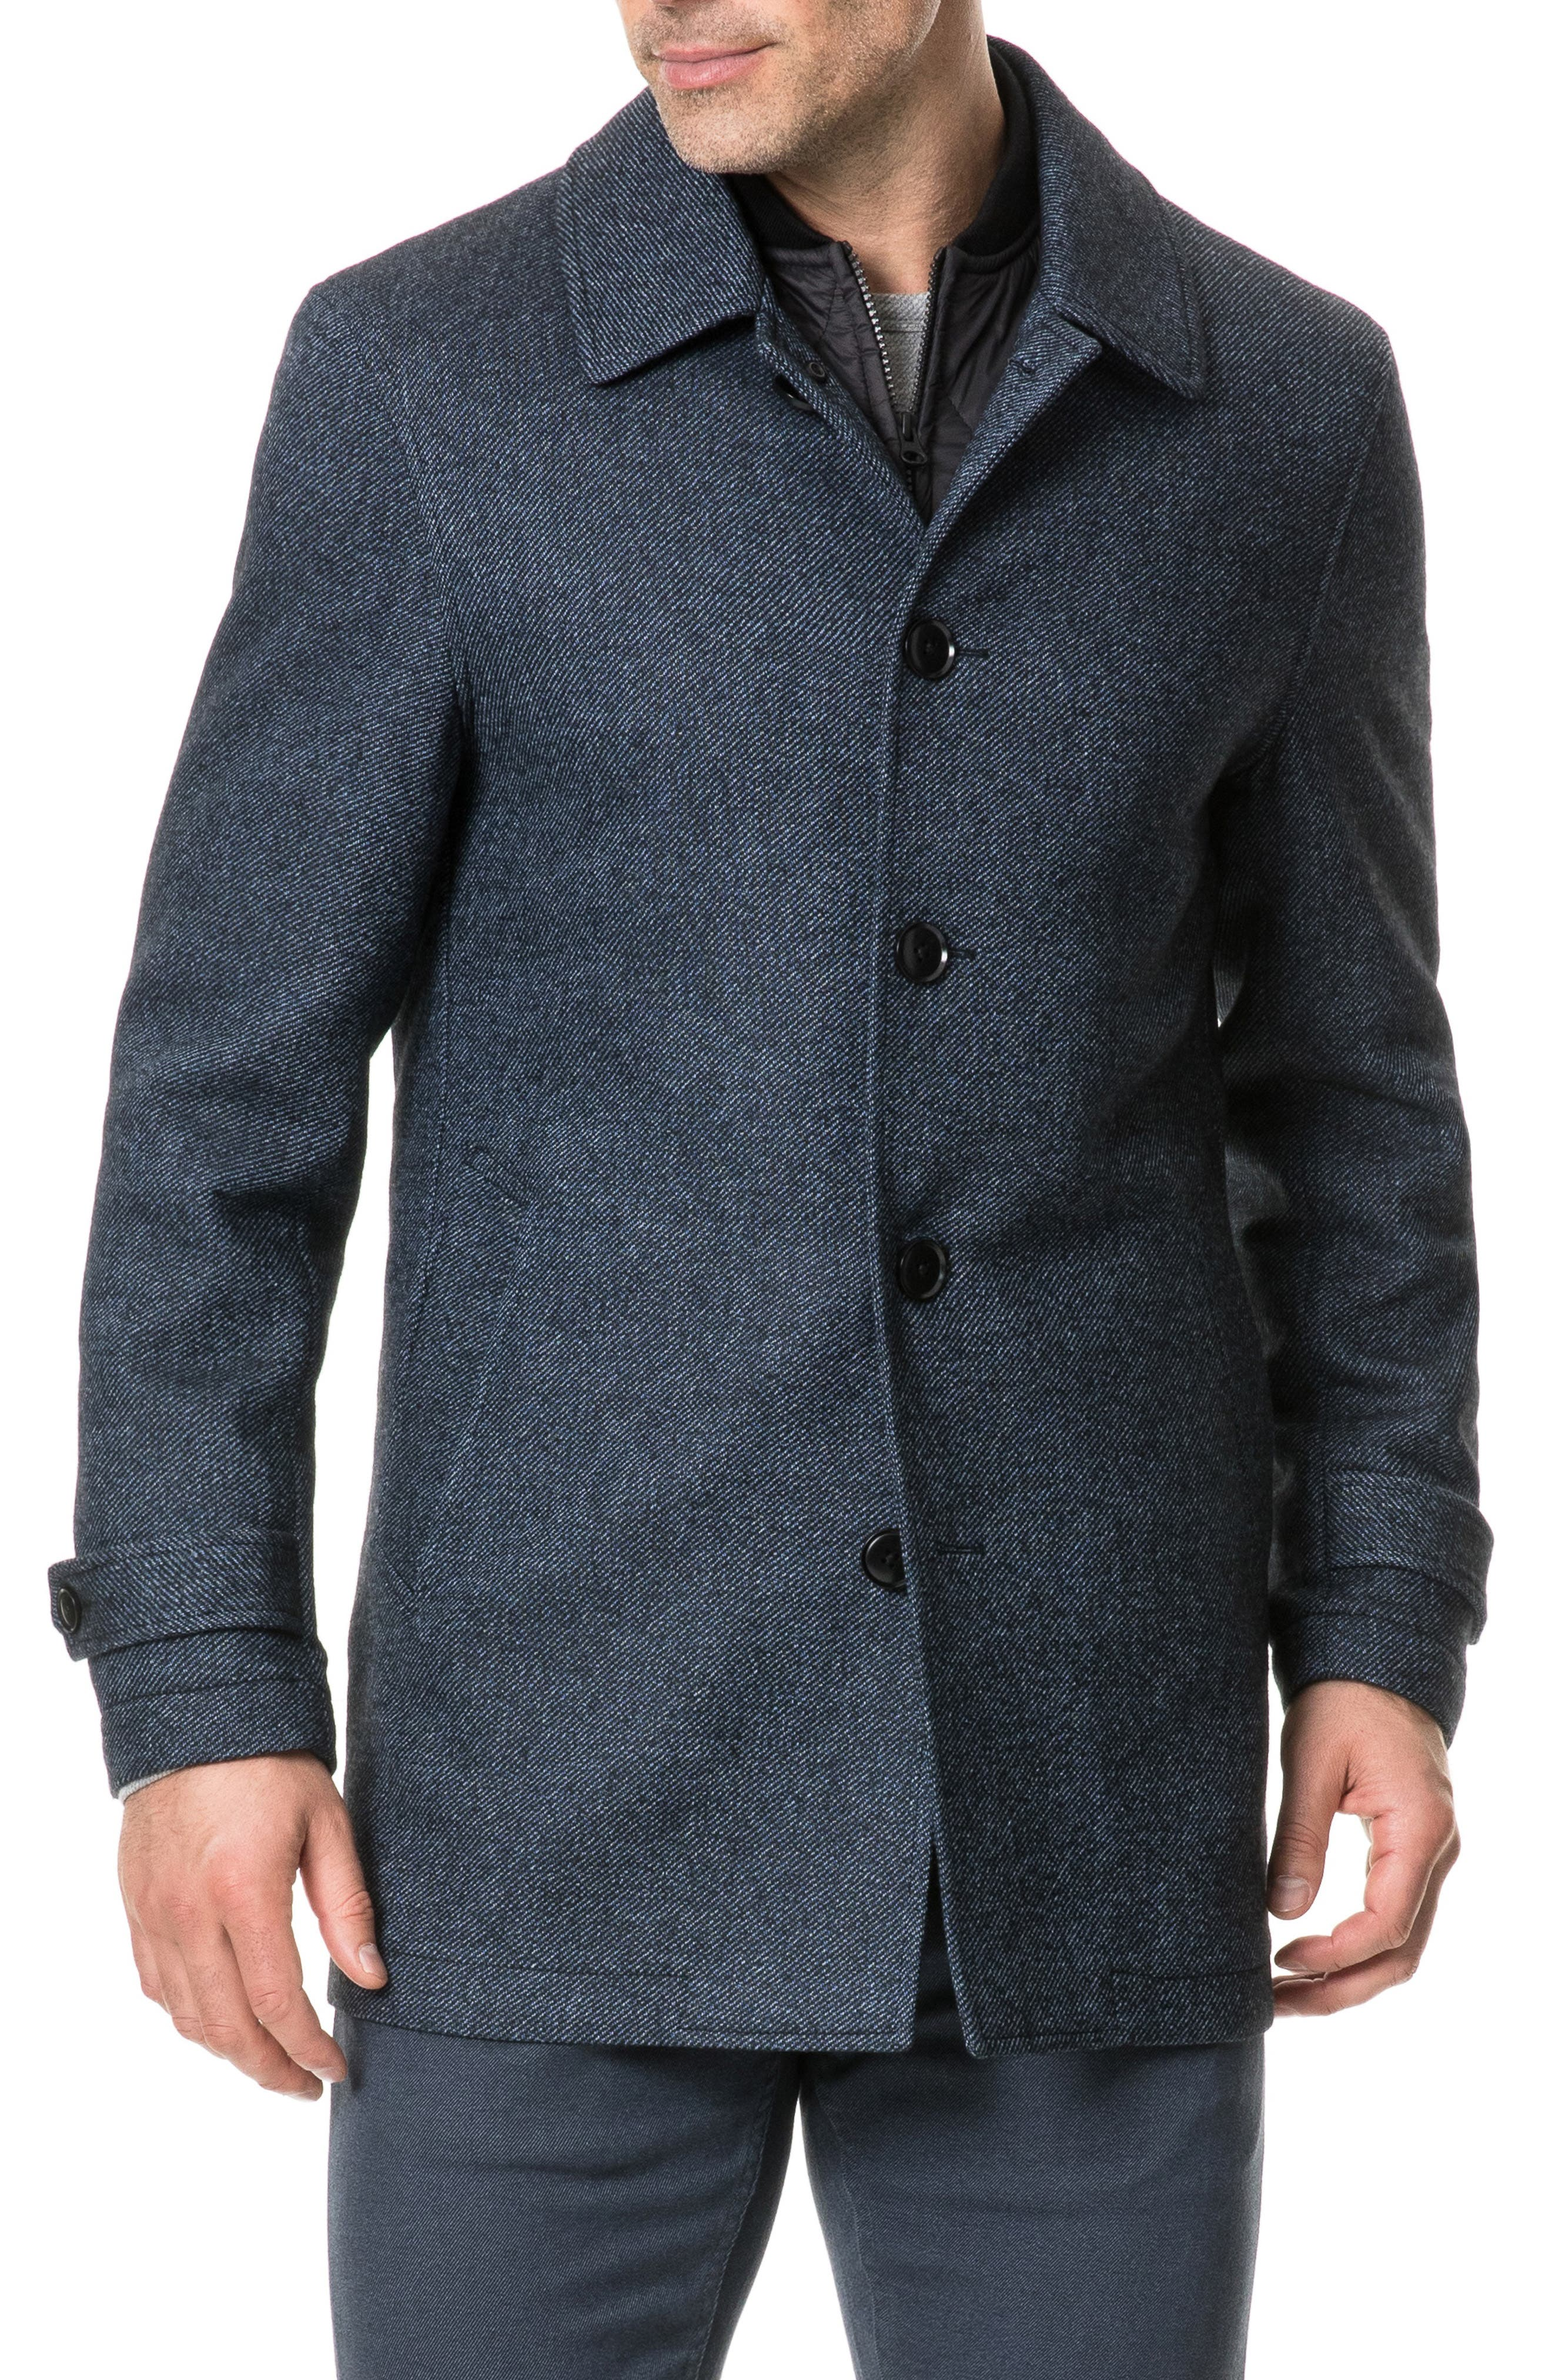 RODD AND GUNN Balmoral Forest Regular Fit Jacket at Nordstrom Rack